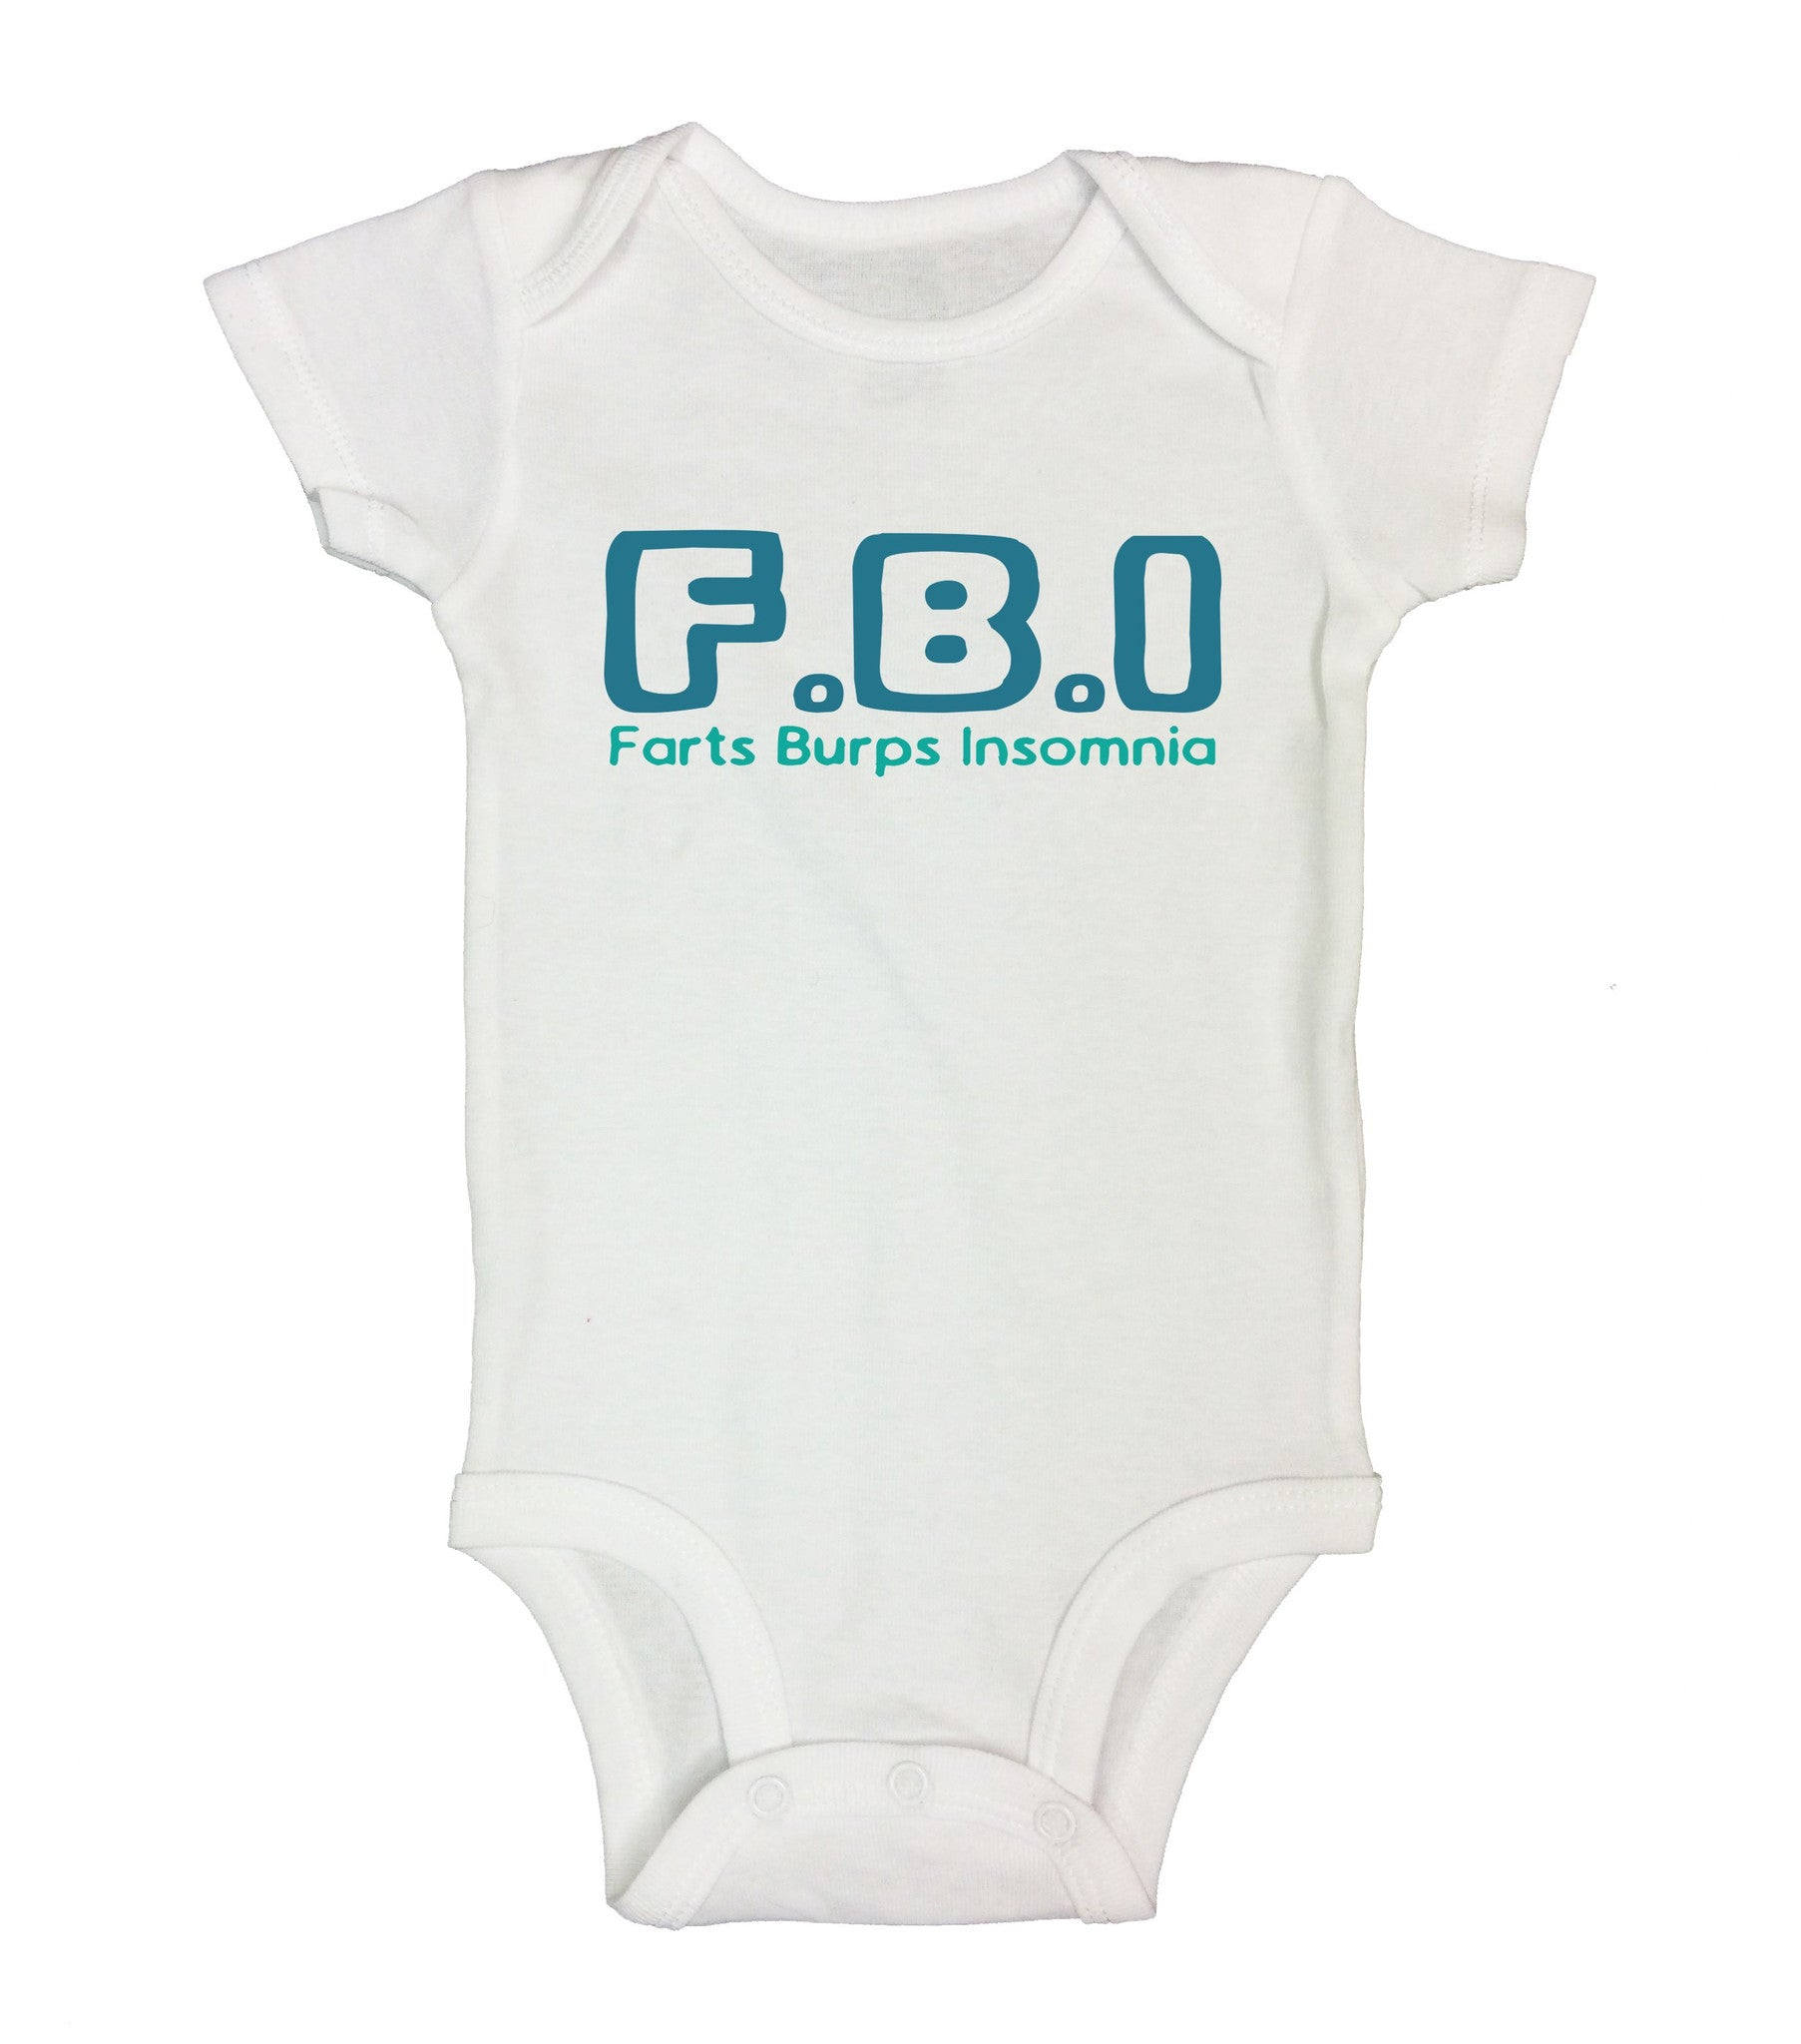 F.B.I Farts Burps Insomnia Funny Kids Onesie - B43 - Funny Shirts Tank Tops Burnouts and Triblends  - 2